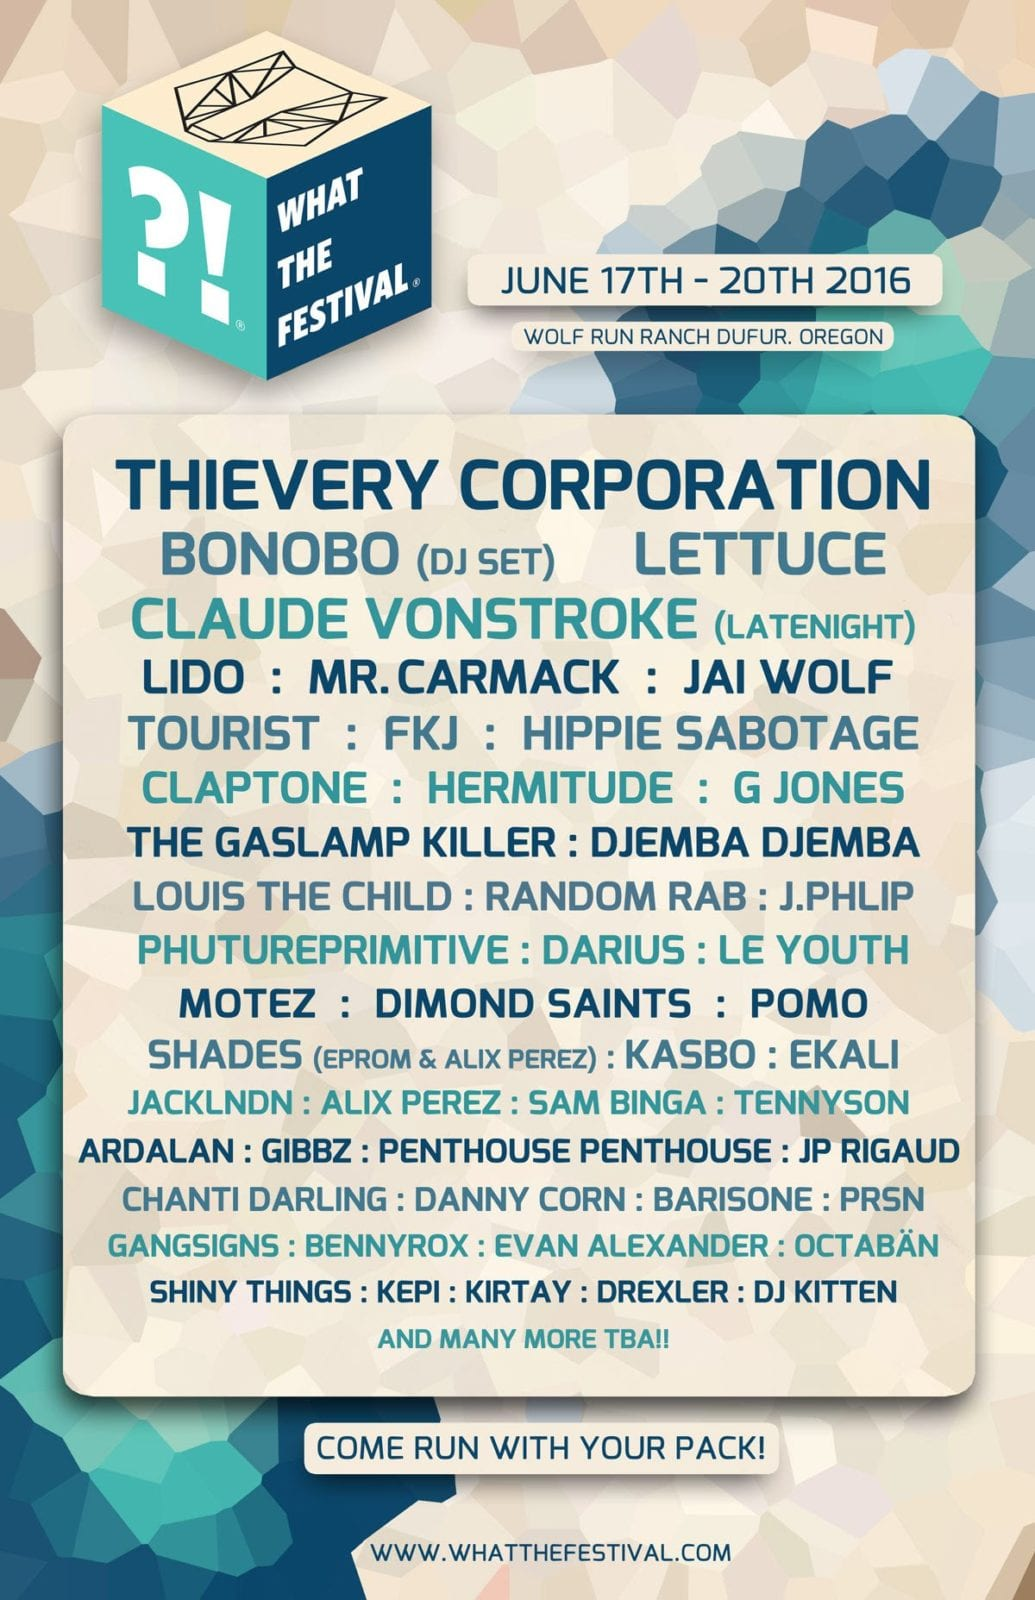 What The Festival Drops 2016 Lineup Announcement!